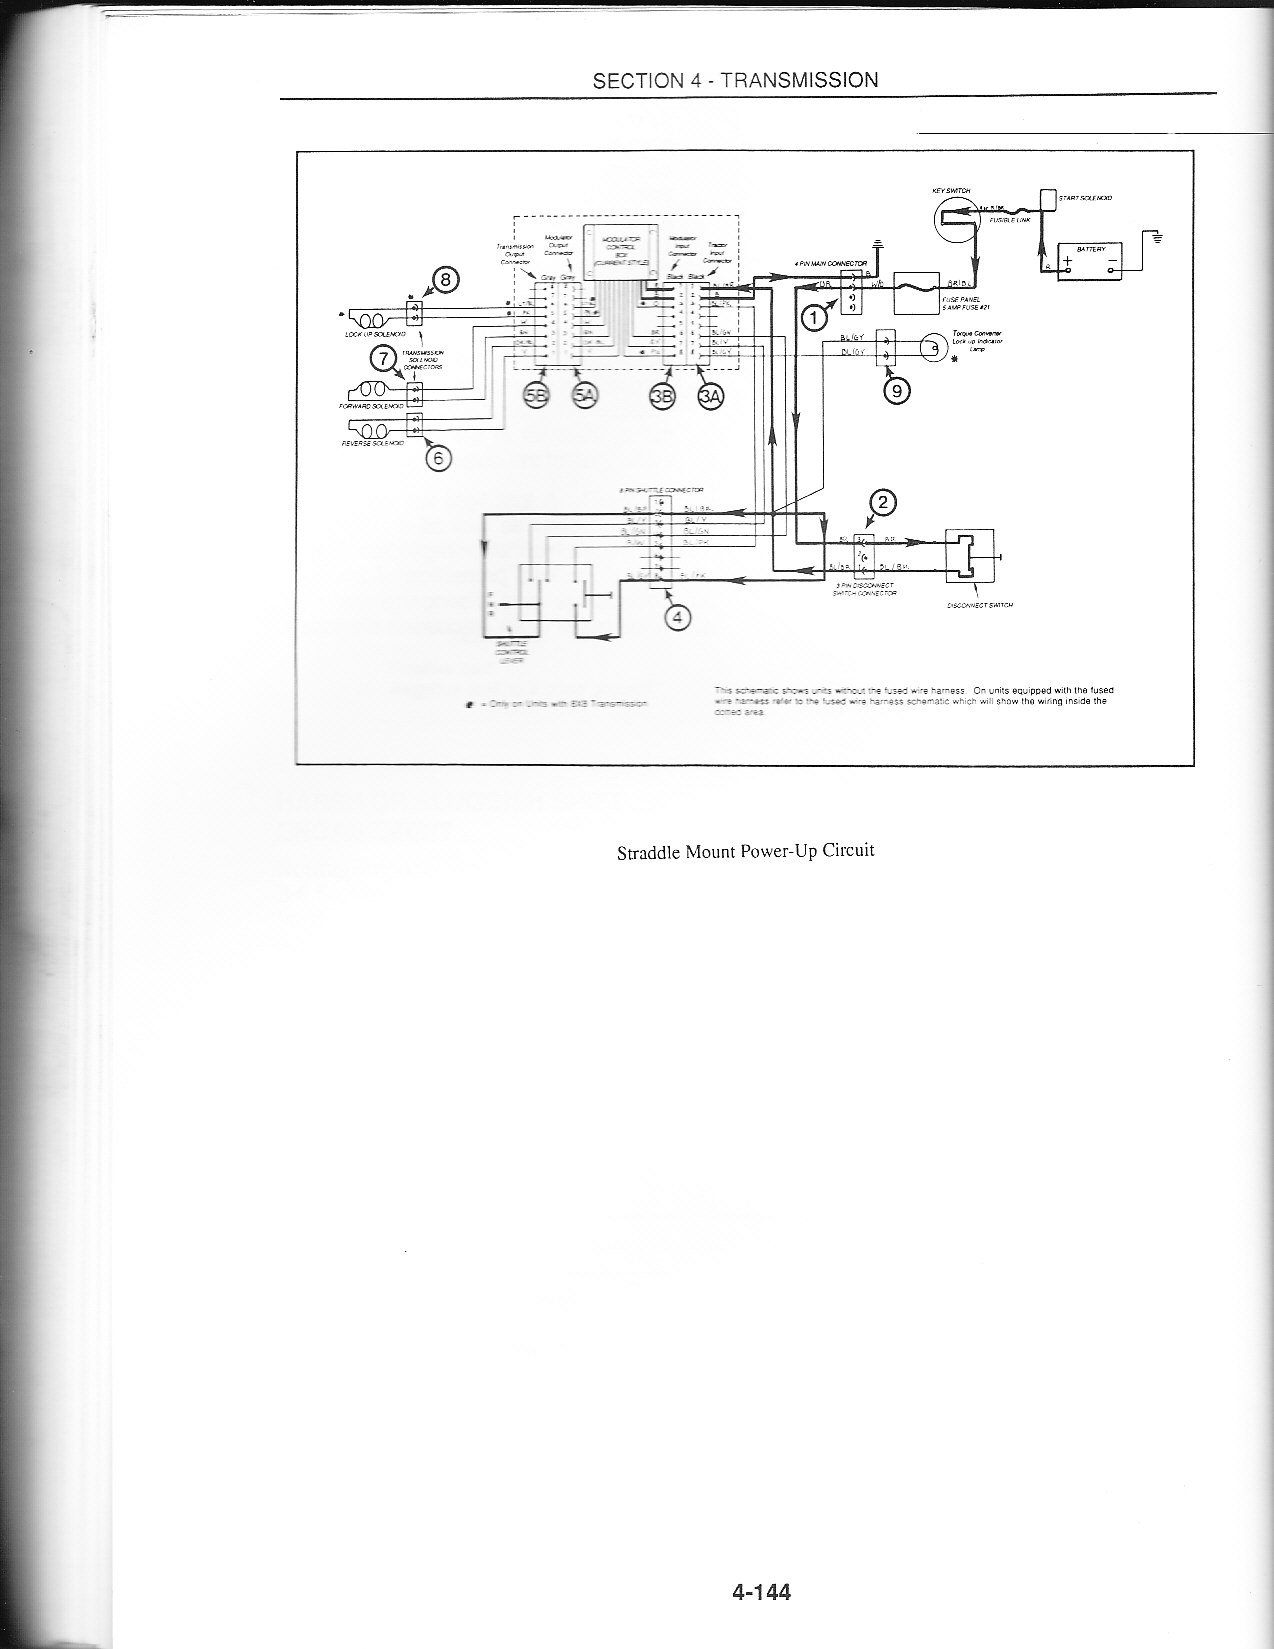 Ford 445d Tractor Wiring Harness Diagram Diagrams Scematic Alternator I Have A 445c Loader With 8 X8 Lectronic Shuttle Shift